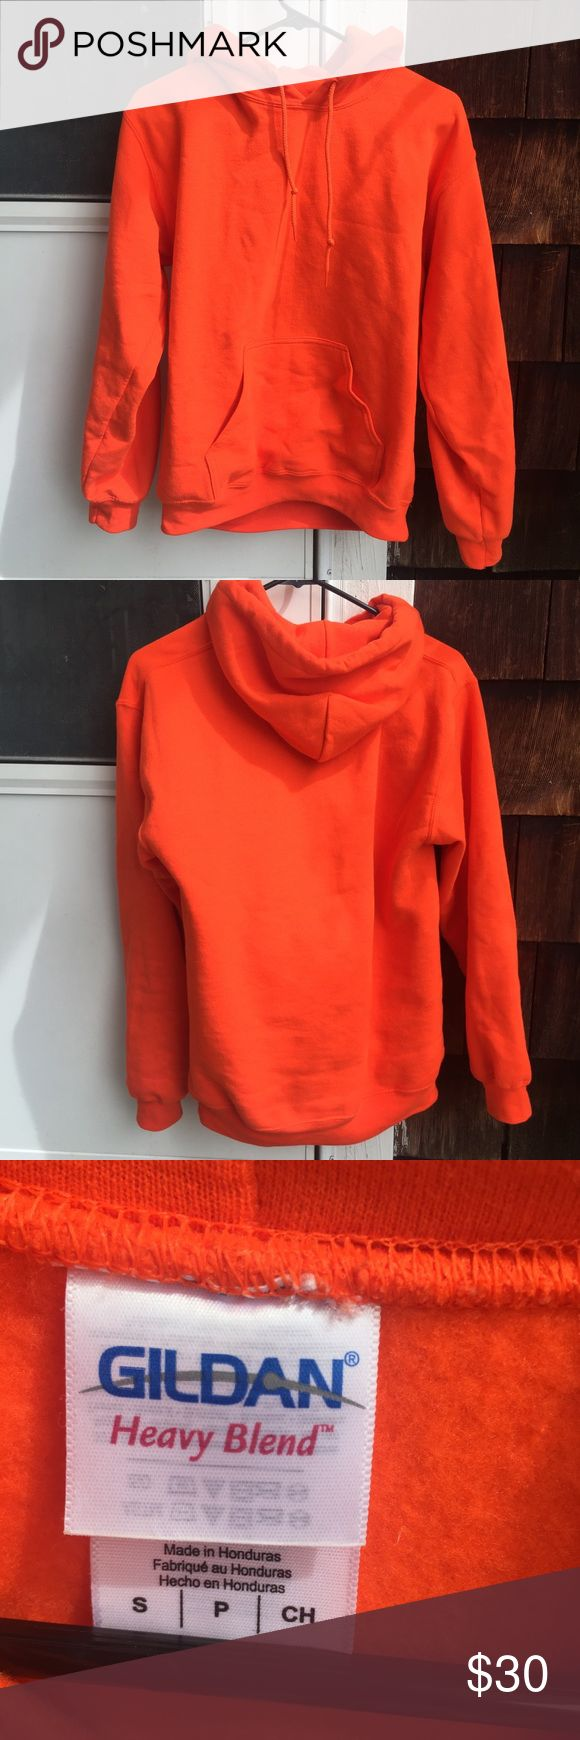 Gildan Heavy Blend Orange Hoodie 🍊 Not Brandy! |  Gildan Heavy Blend | Orange Hoodie | Size : Small ! | Super Cute & Comfy ! | No Flaws  ||✨TAGS: Brandy Melville, BM , American Apparel , AA , Urban Outfitters, UO , Topshop , LF , Unif , Tarte , Too Faced , Adidas , Nike ‼️MAKE OFFERS THROUGH BUTTON ONLY‼️❌NO TRADES PLEASE❌ Brandy Melville Tops Sweatshirts & Hoodies